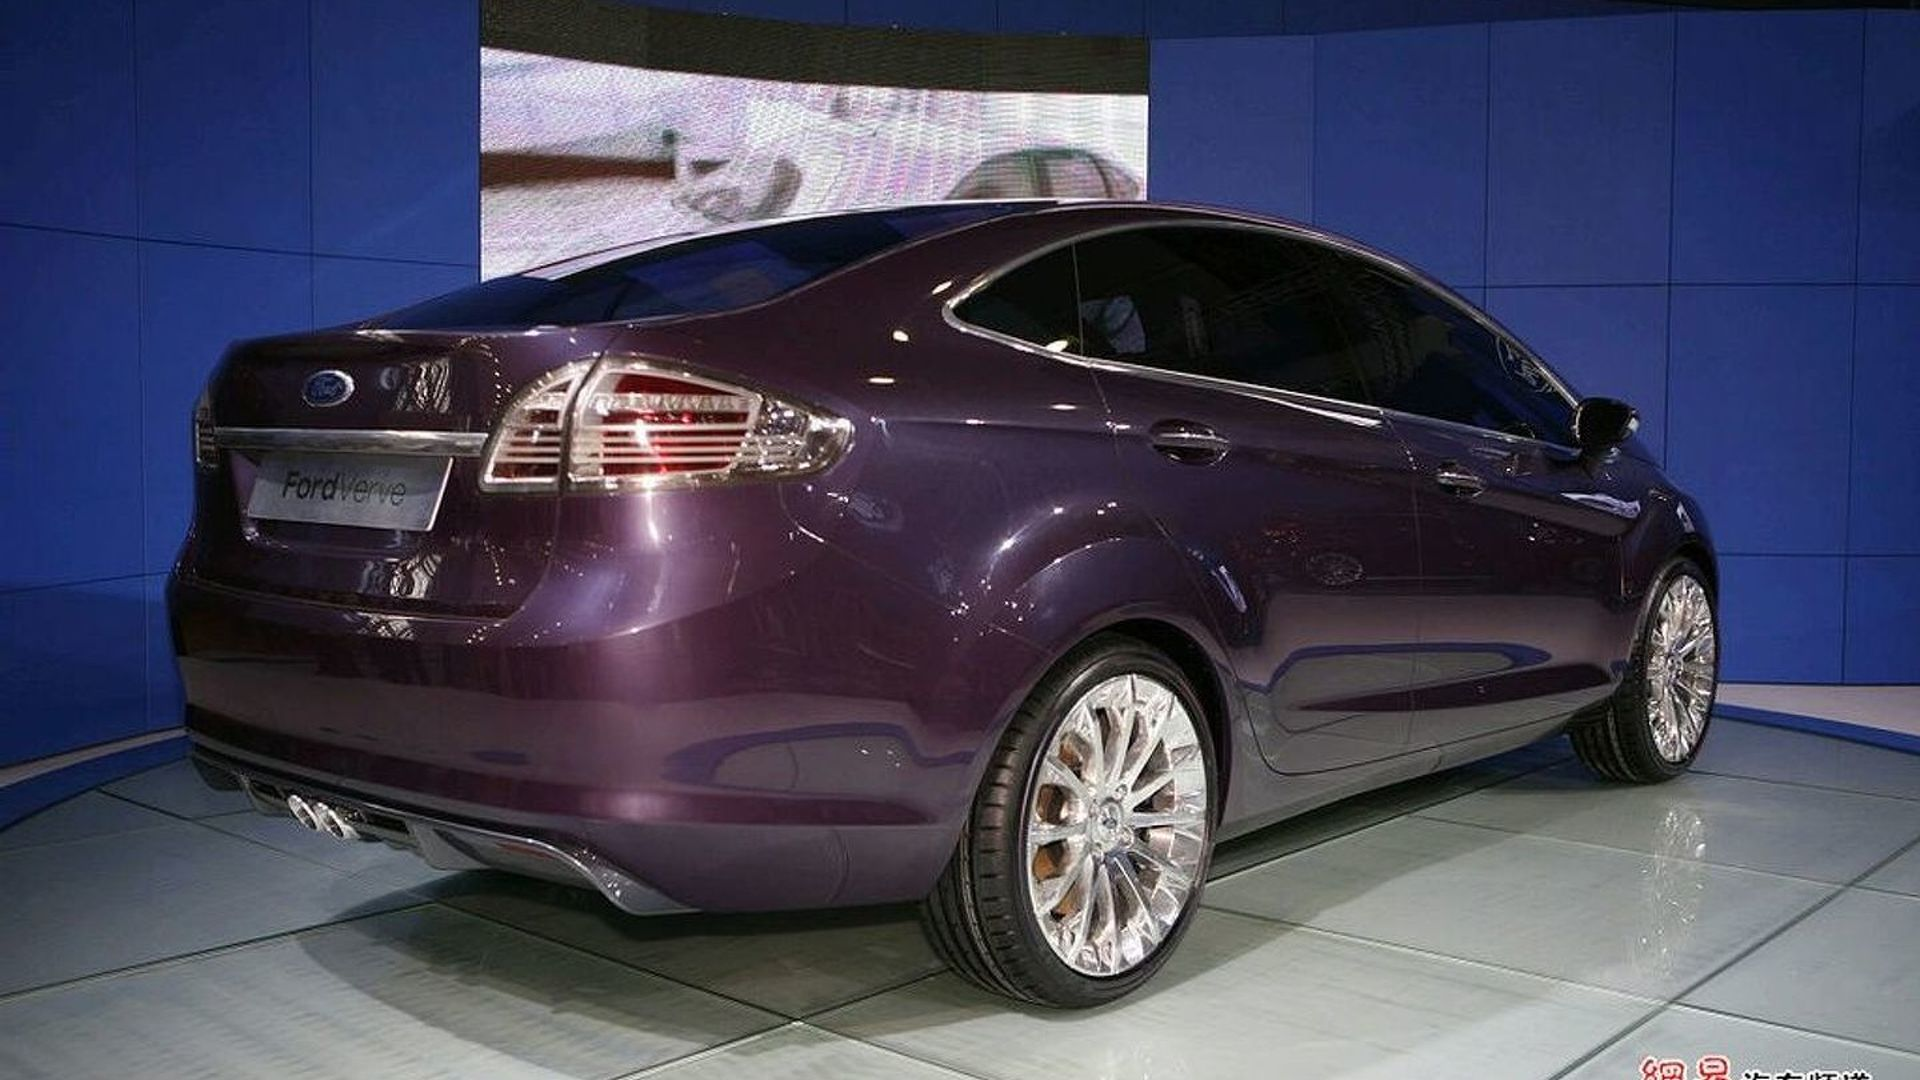 Ford Verve 4 Door Concept Debut In Guangzhou